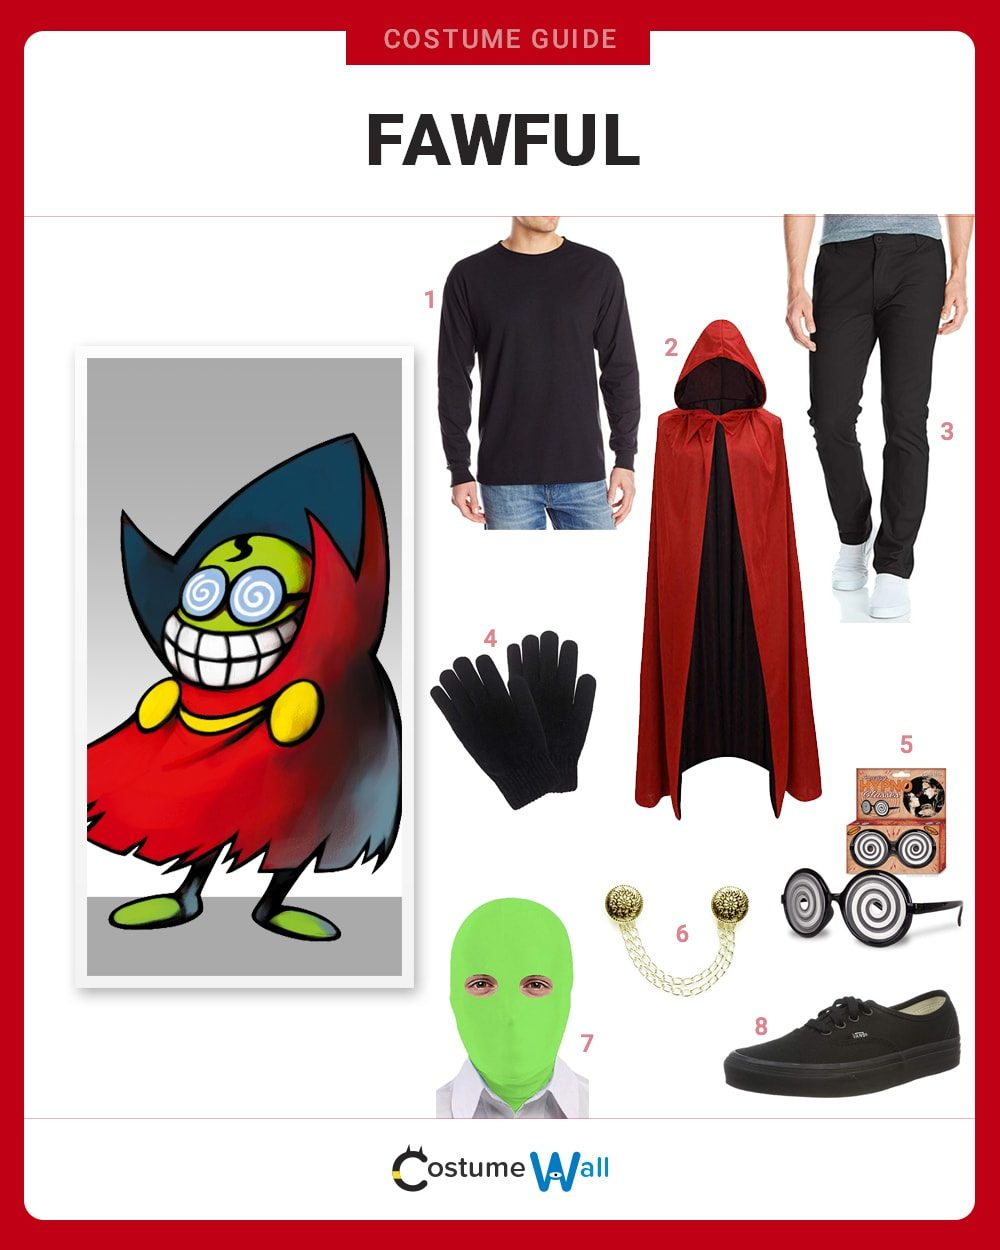 Fawful Costume Guide